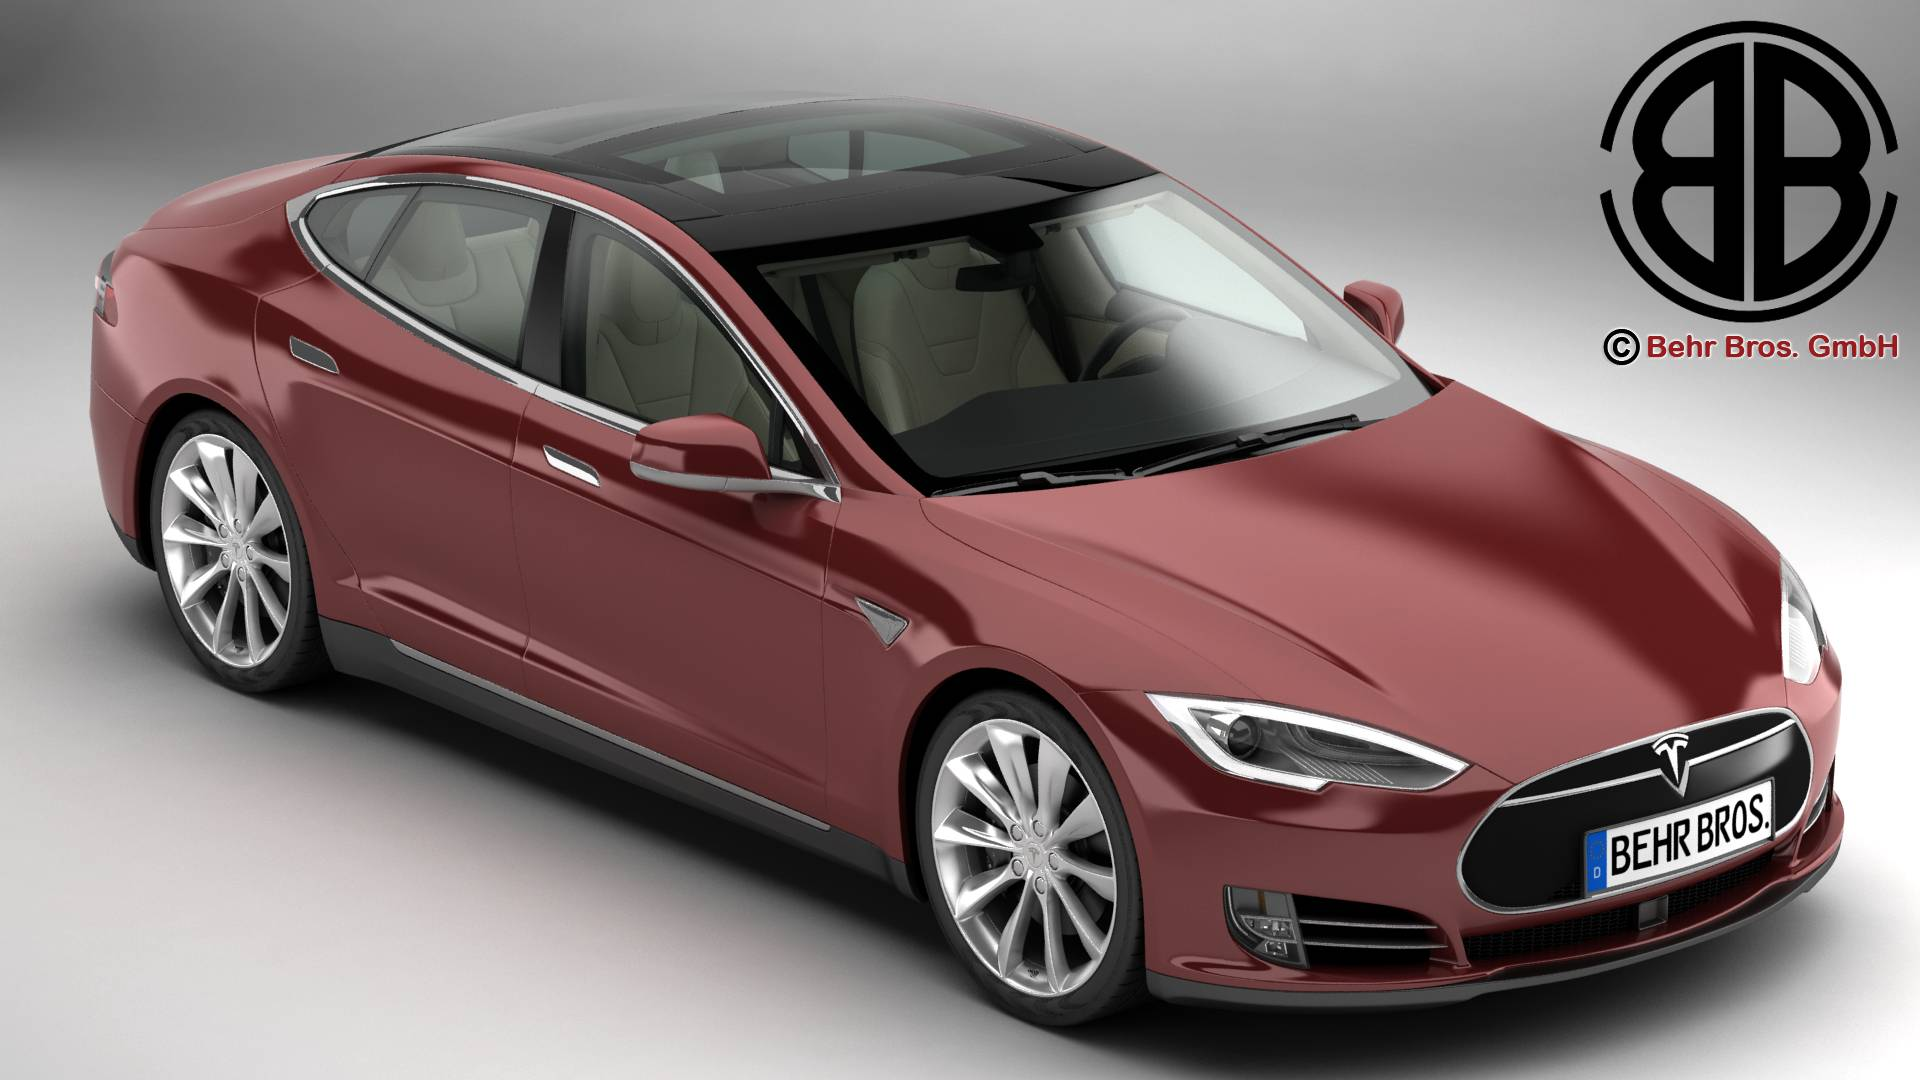 tesla model s 2015 3d model 3ds max fbx c4d lwo ma mb obj 217605